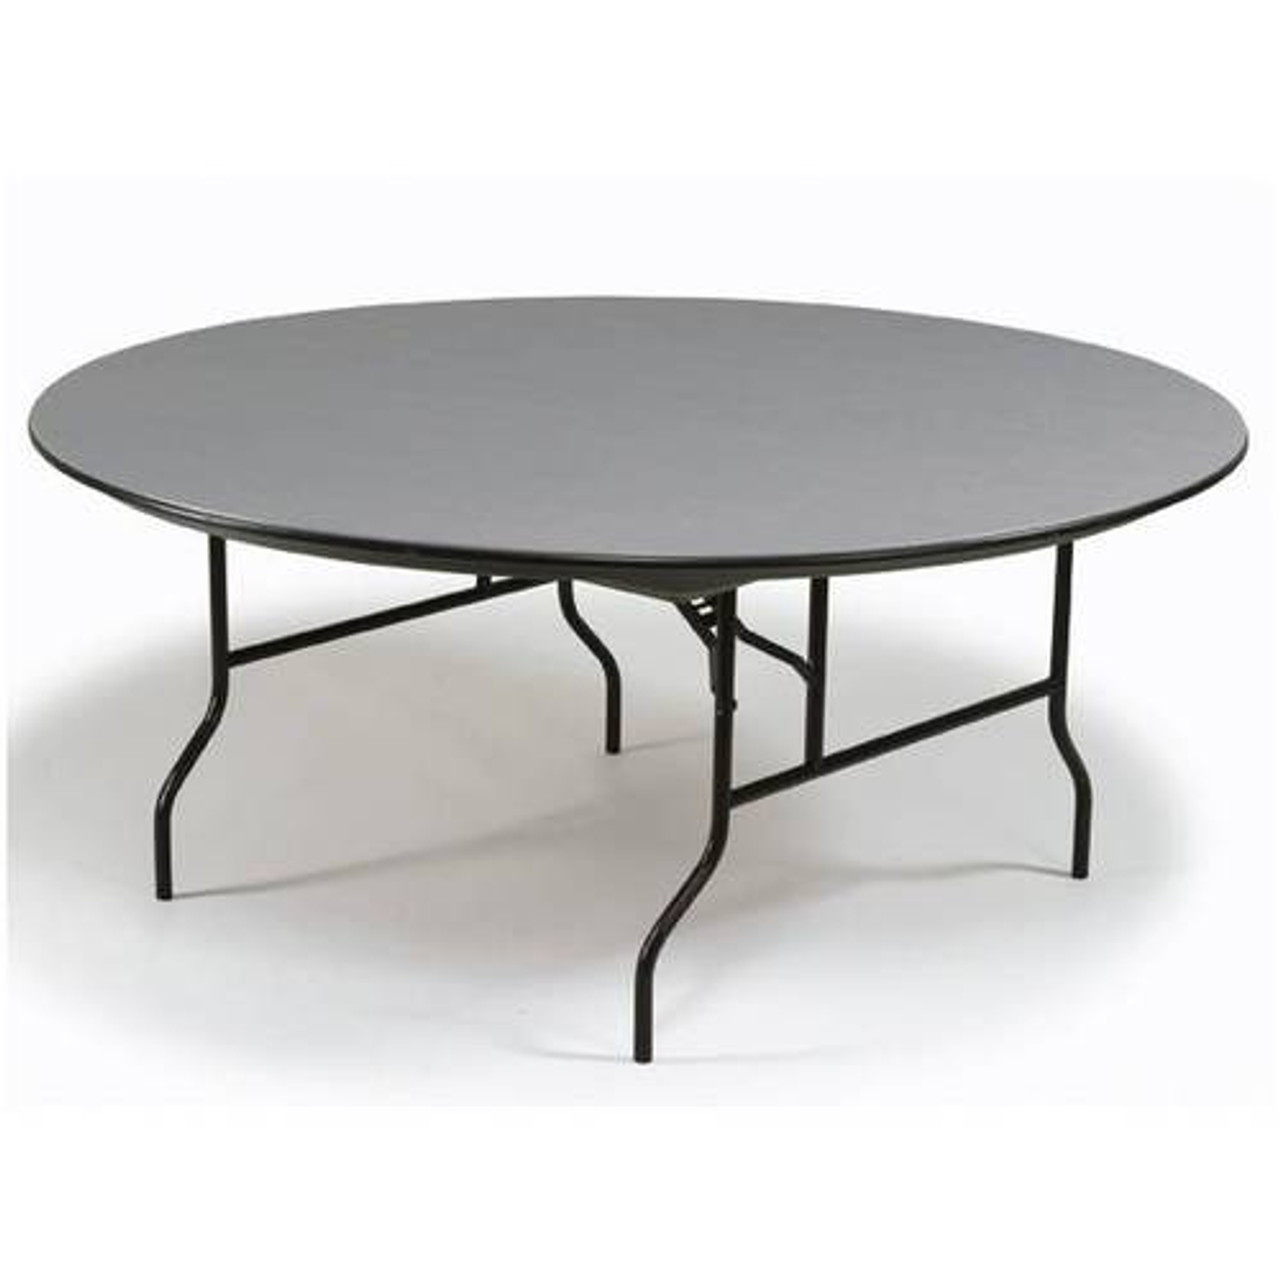 - Midwest R72NLW 72 Inch Round Hexalite Folding Table L Affordable